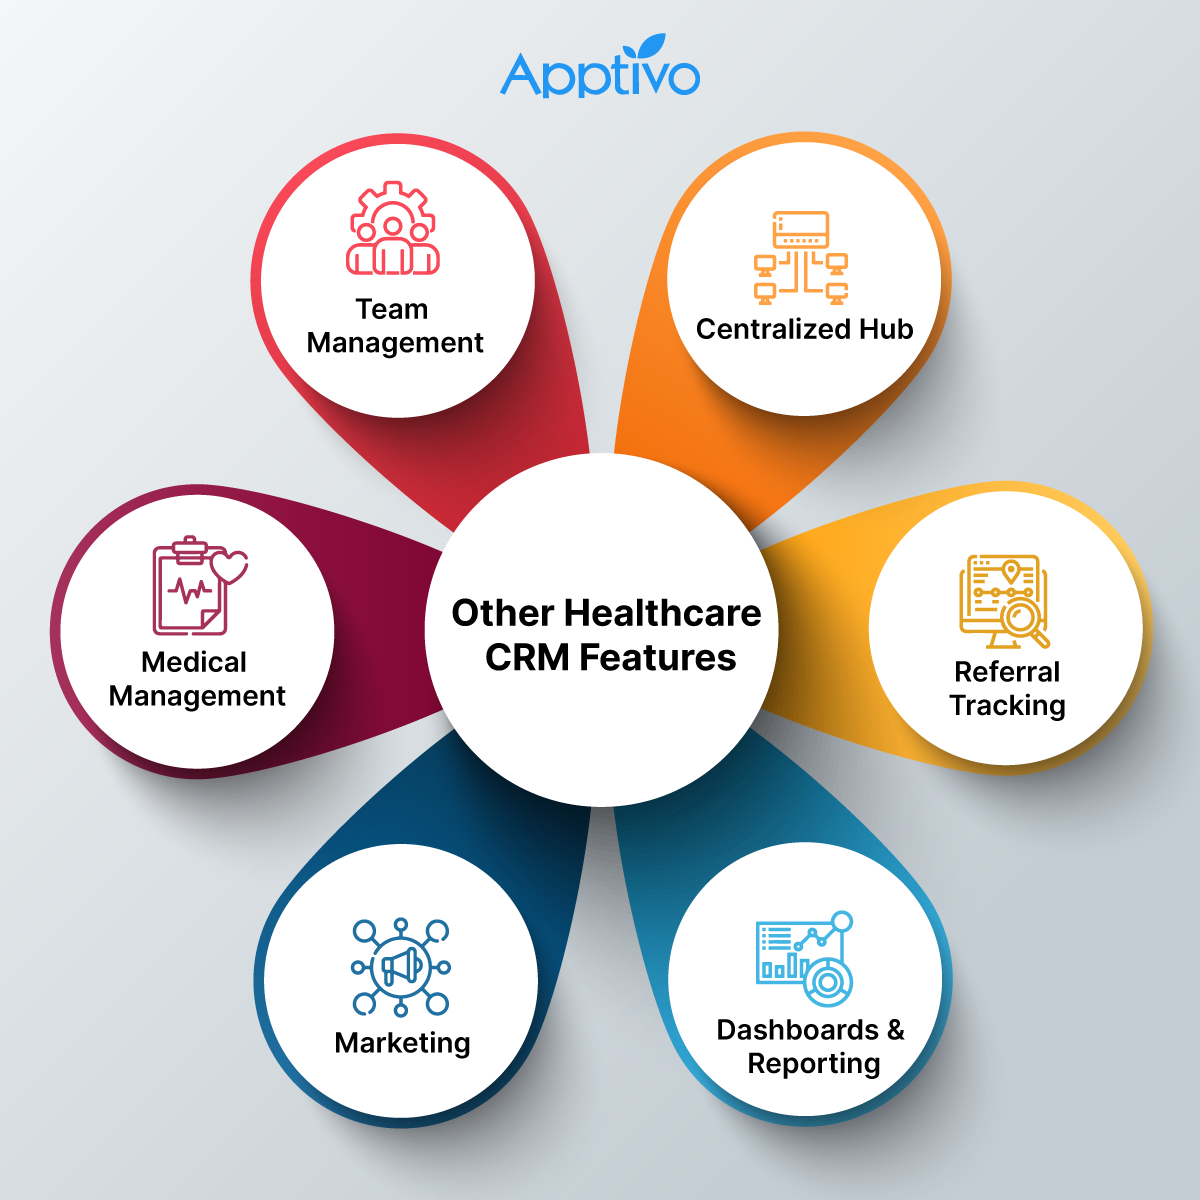 Healthcare CRM Features